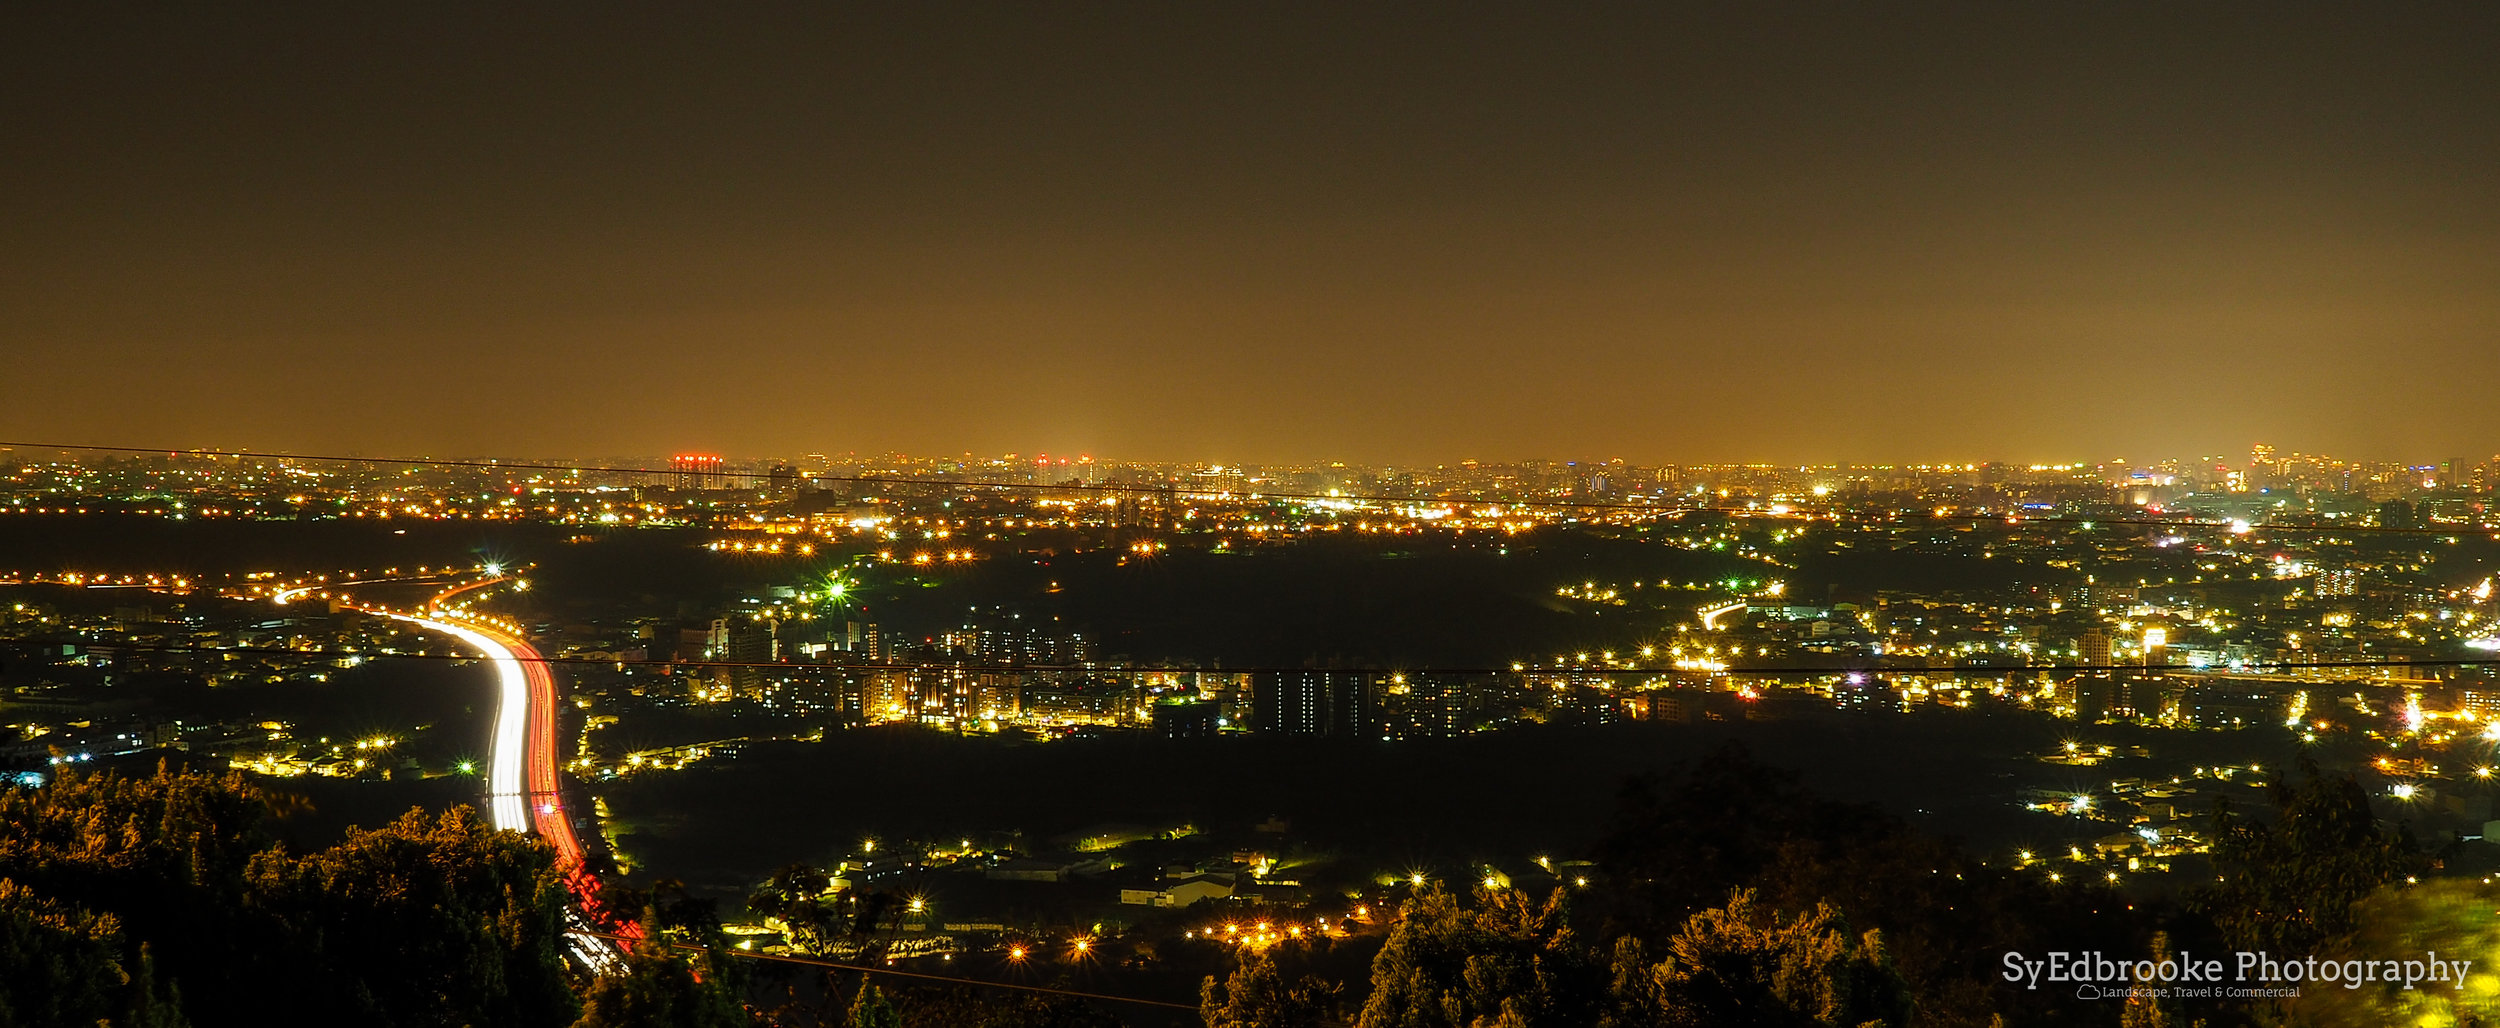 A night view from the Bell. f13, ISO 200, 60, 35mm (stitched)